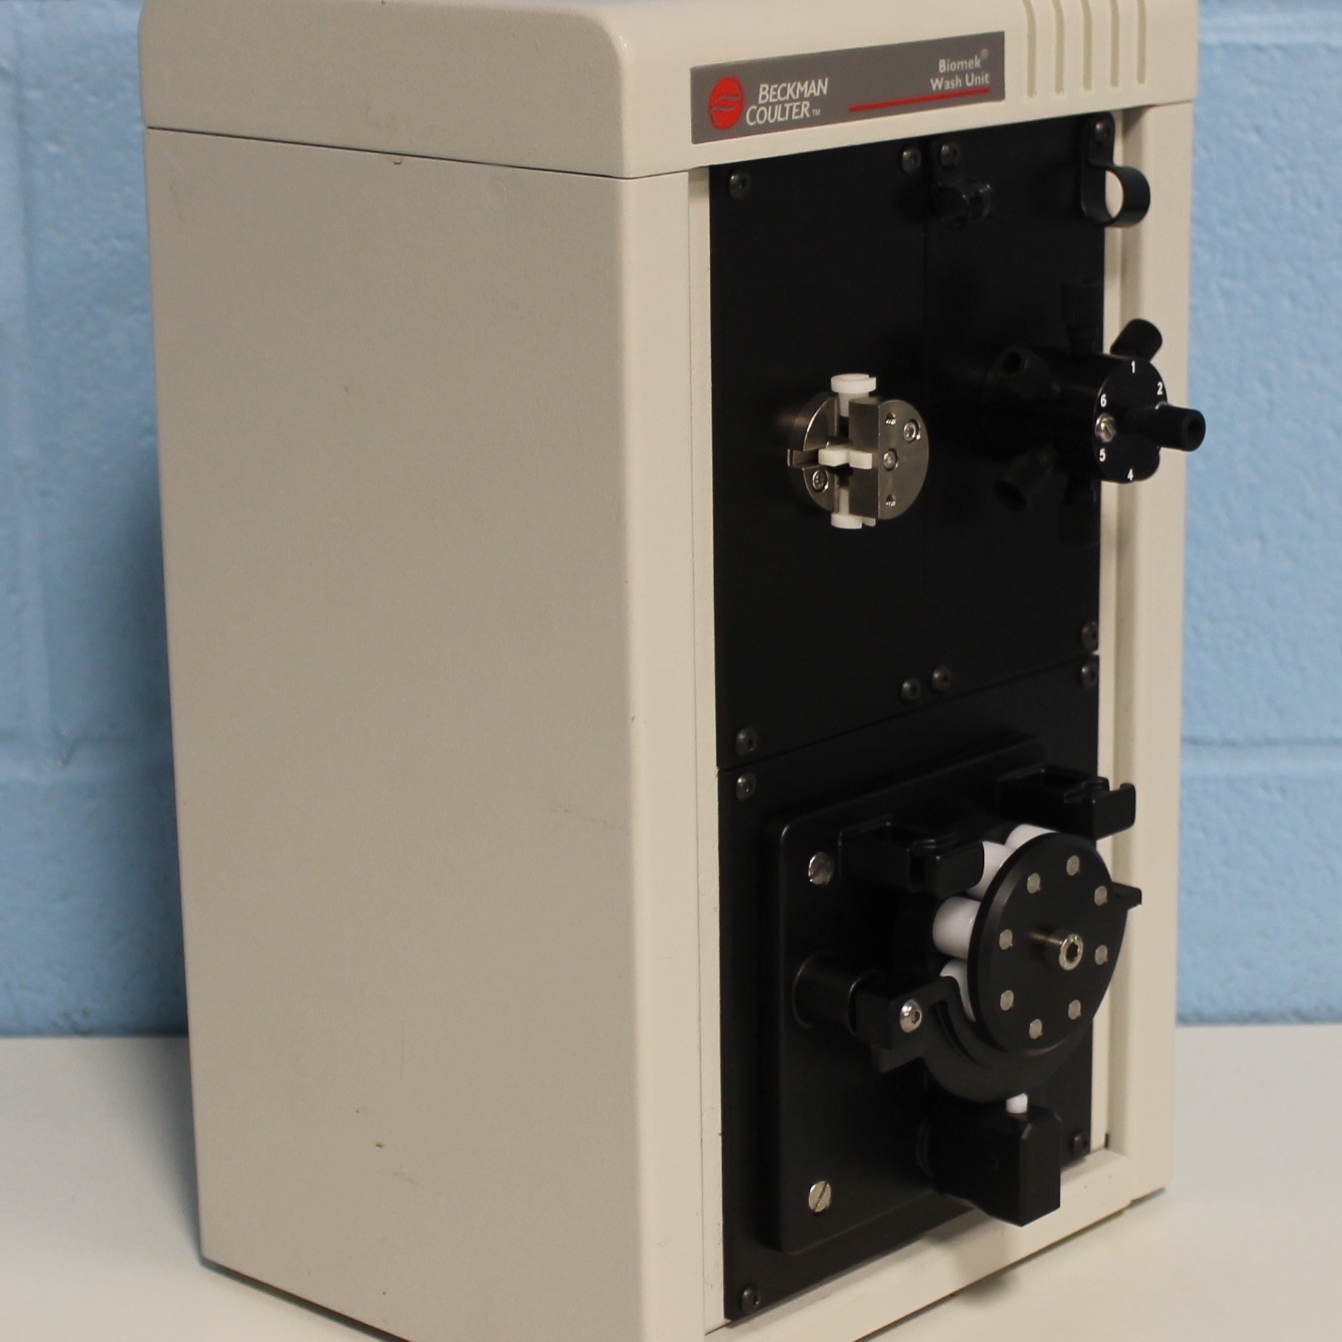 Beckman Coulter Biomek Wash Unit with Automatic 6-Port Valve Image